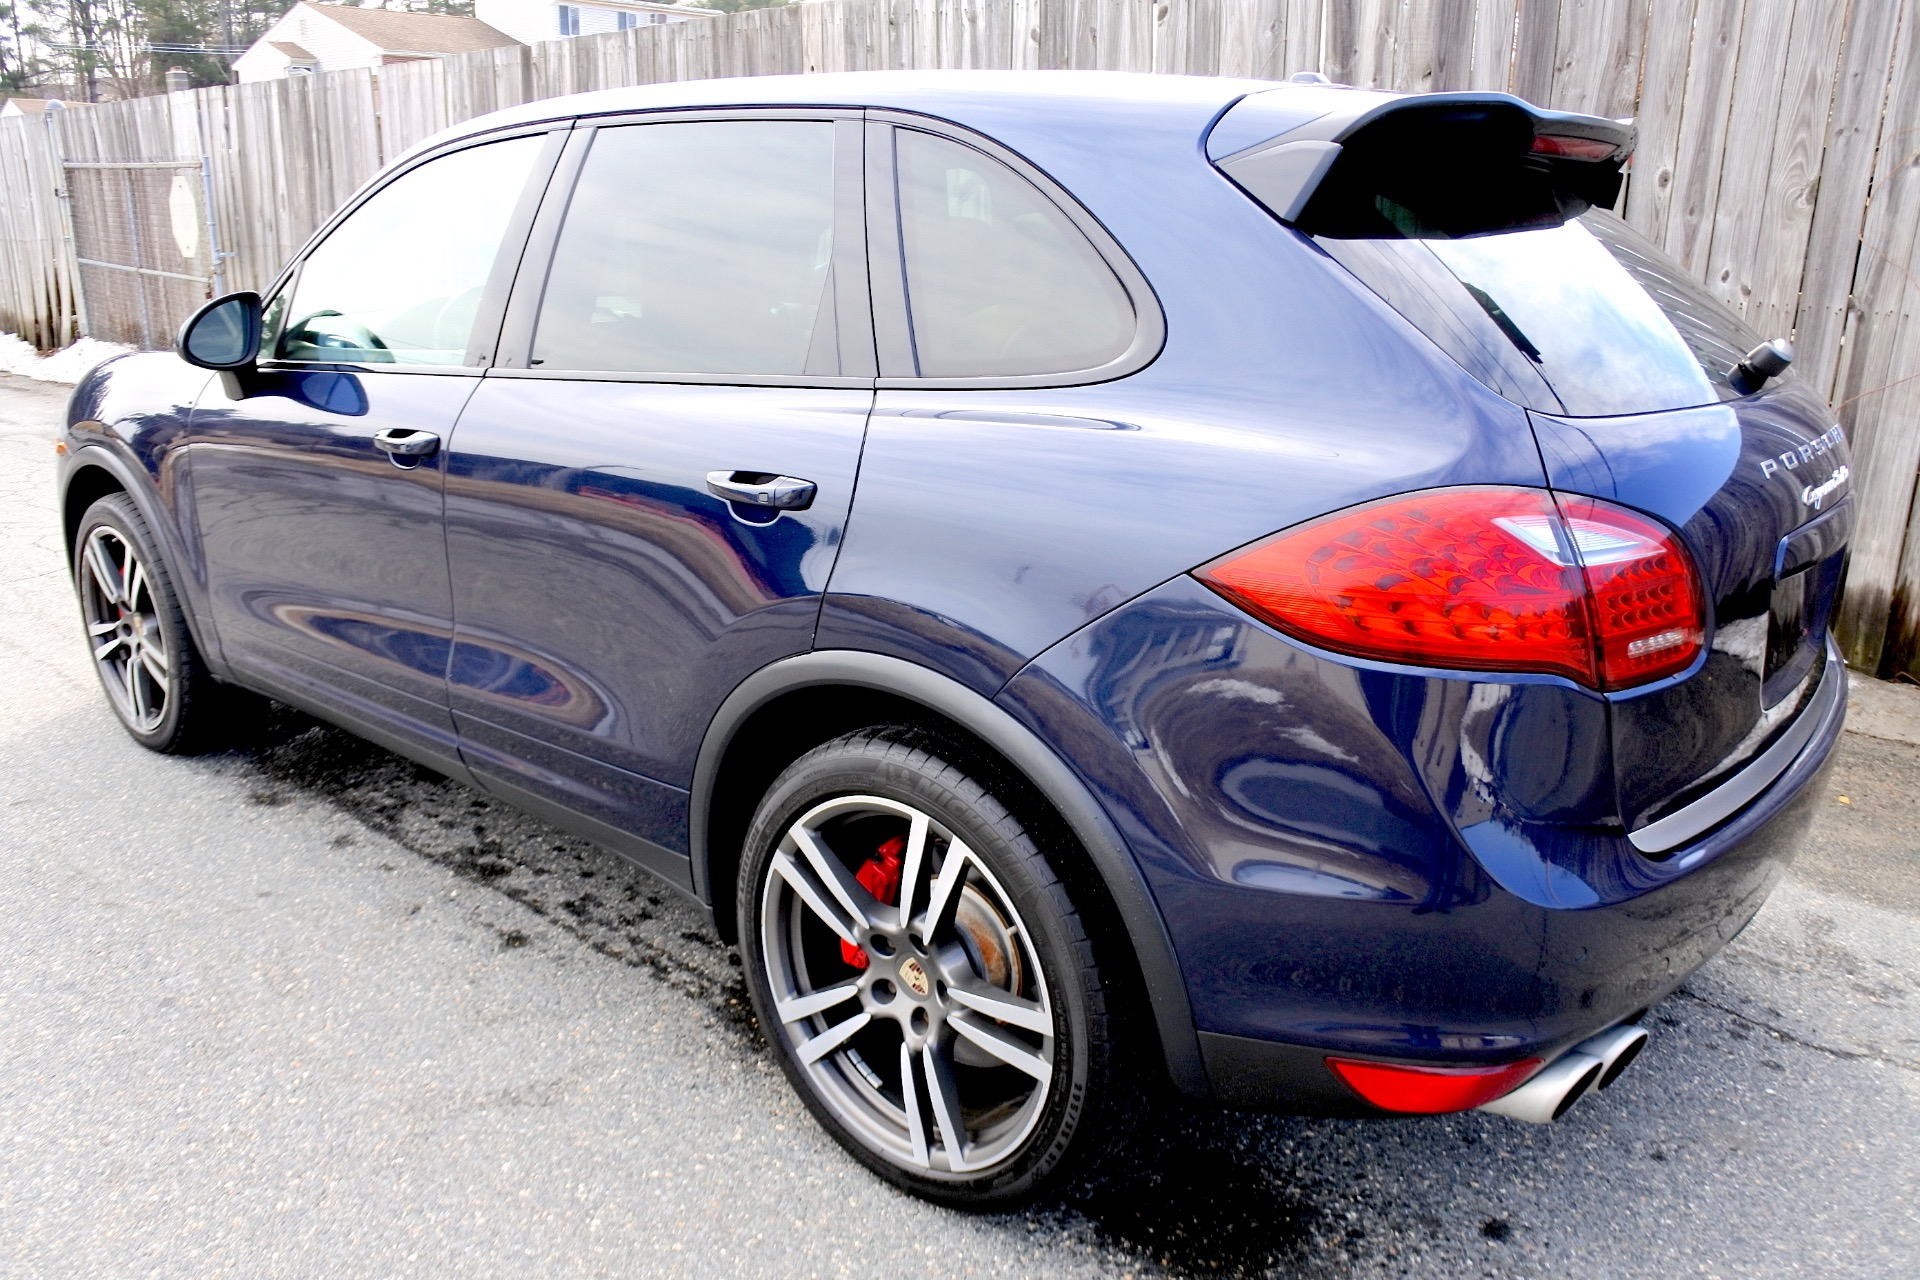 Used 2012 Porsche Cayenne AWD 4dr Turbo Used 2012 Porsche Cayenne AWD 4dr Turbo for sale  at Metro West Motorcars LLC in Shrewsbury MA 3